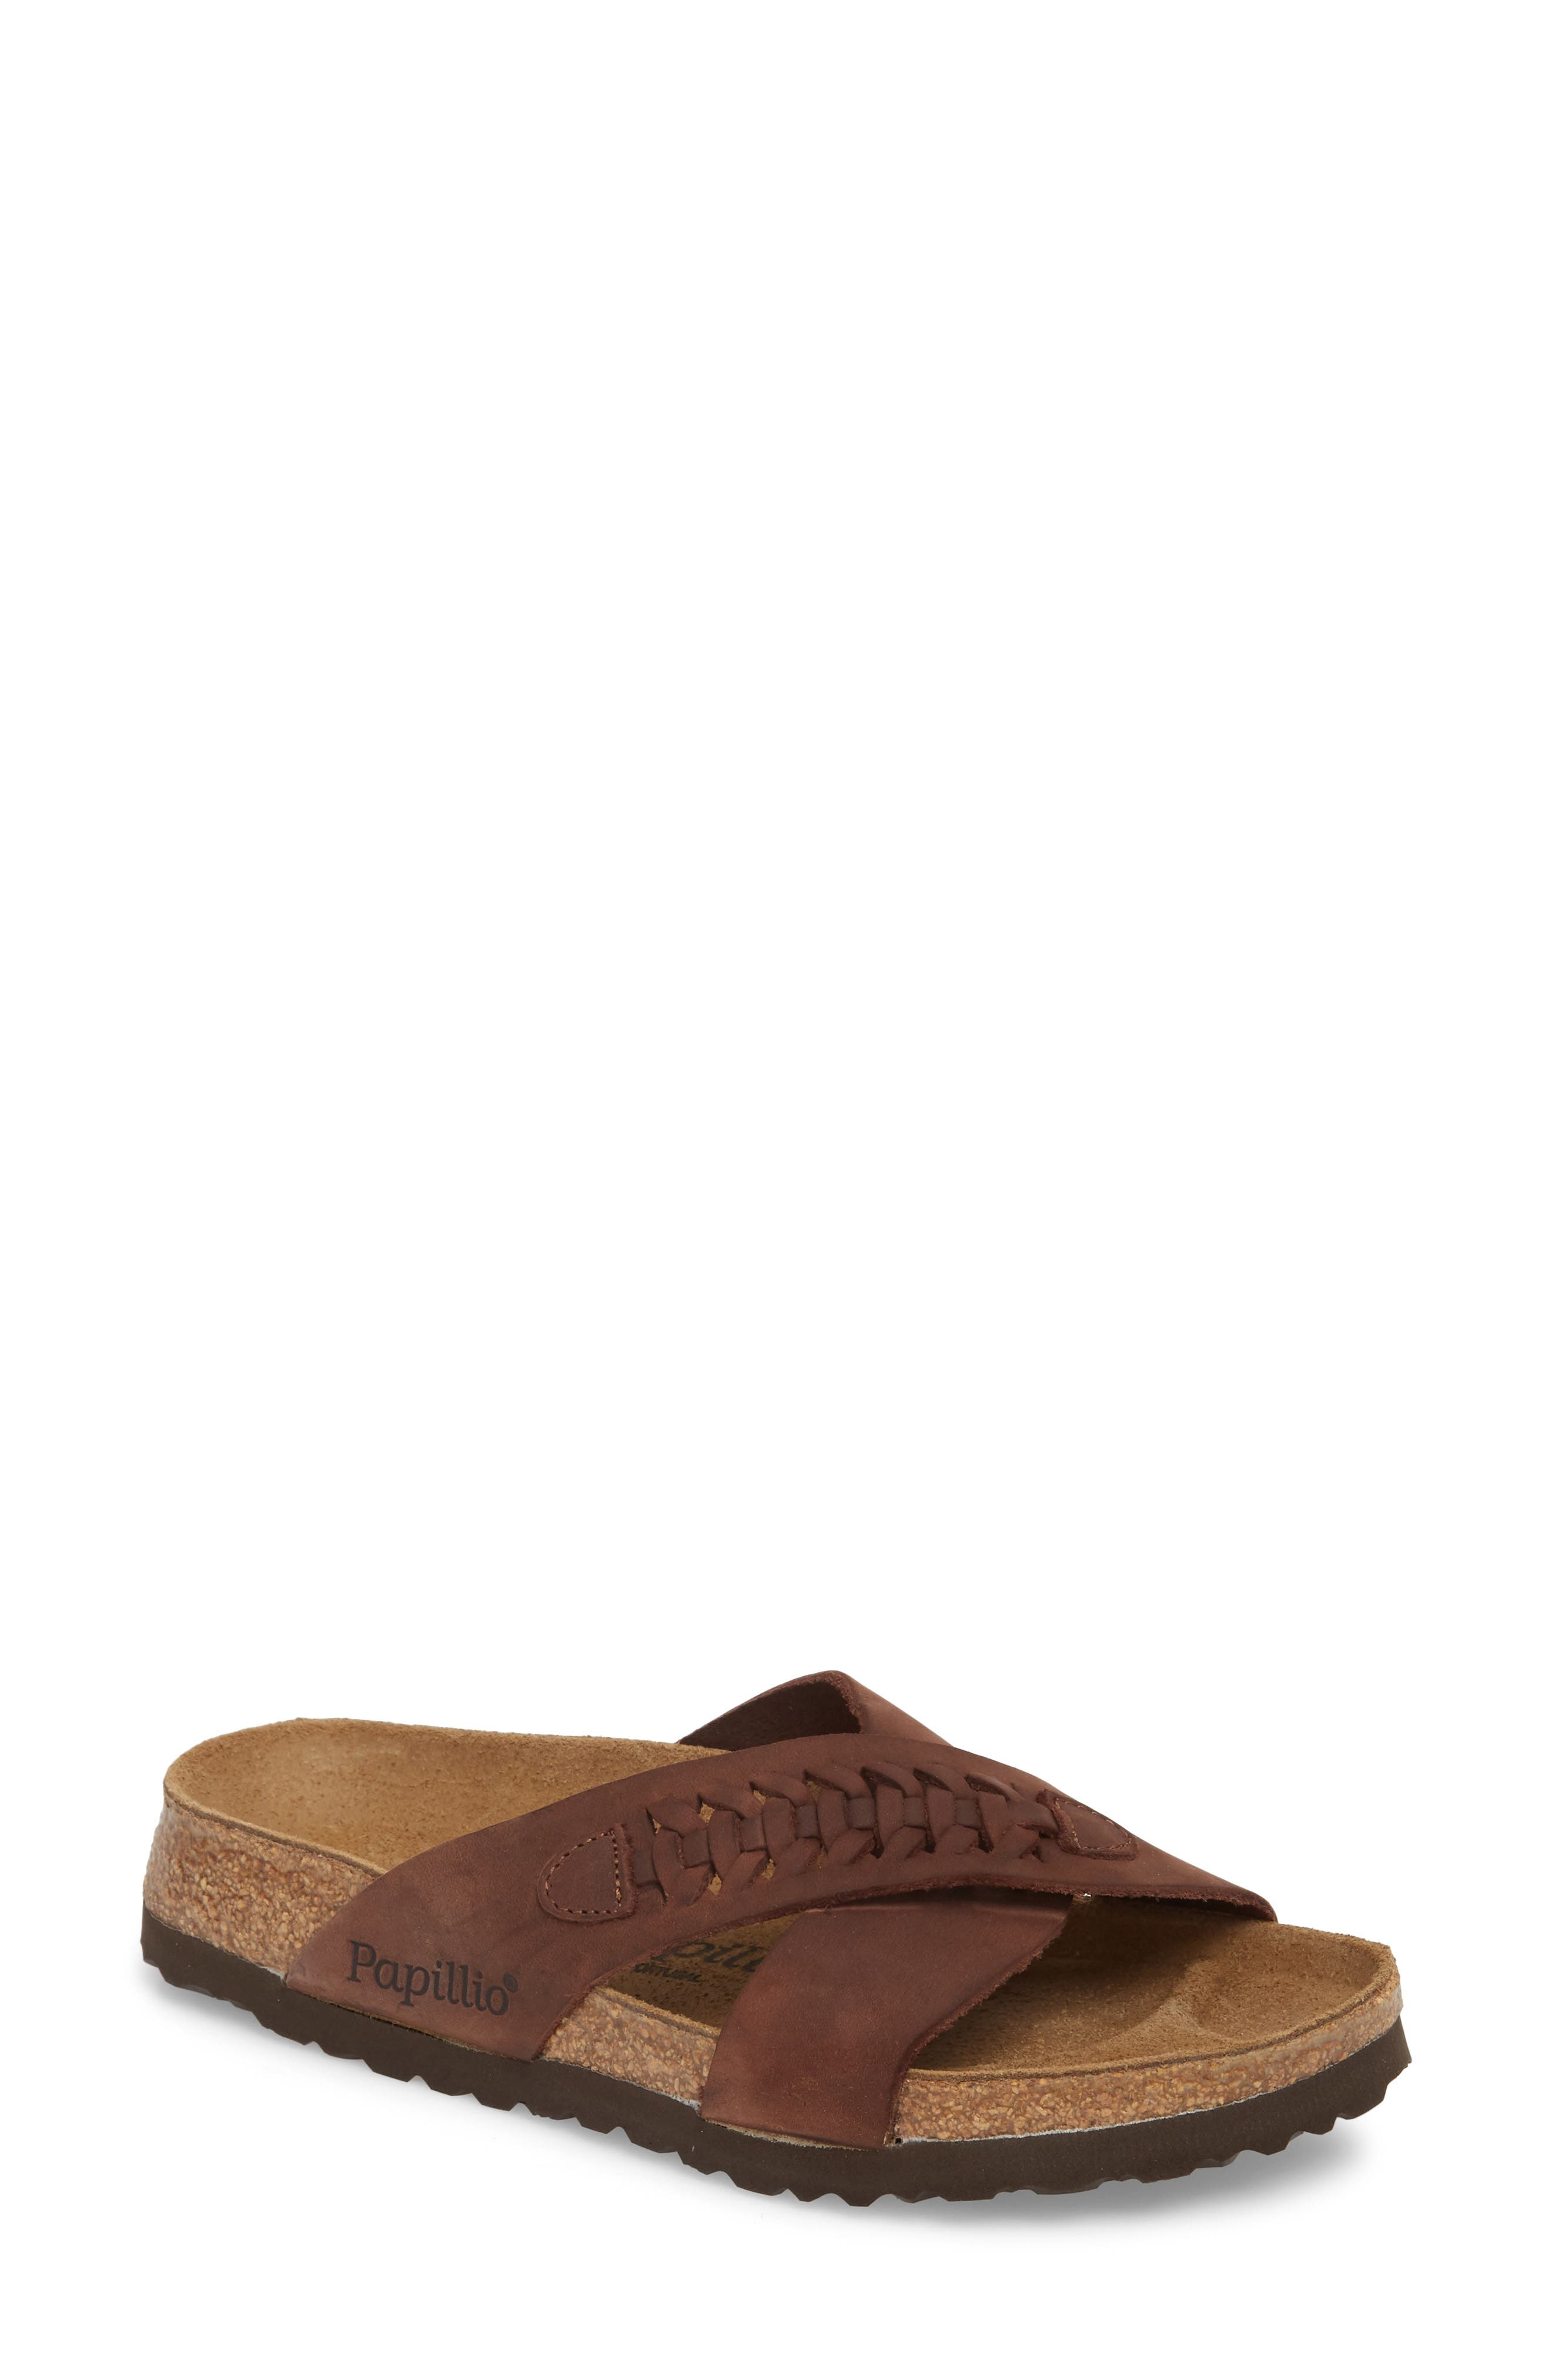 Alternate Image 1 Selected - Papillio by Birkenstock Daytona Slide Sandal (Women)